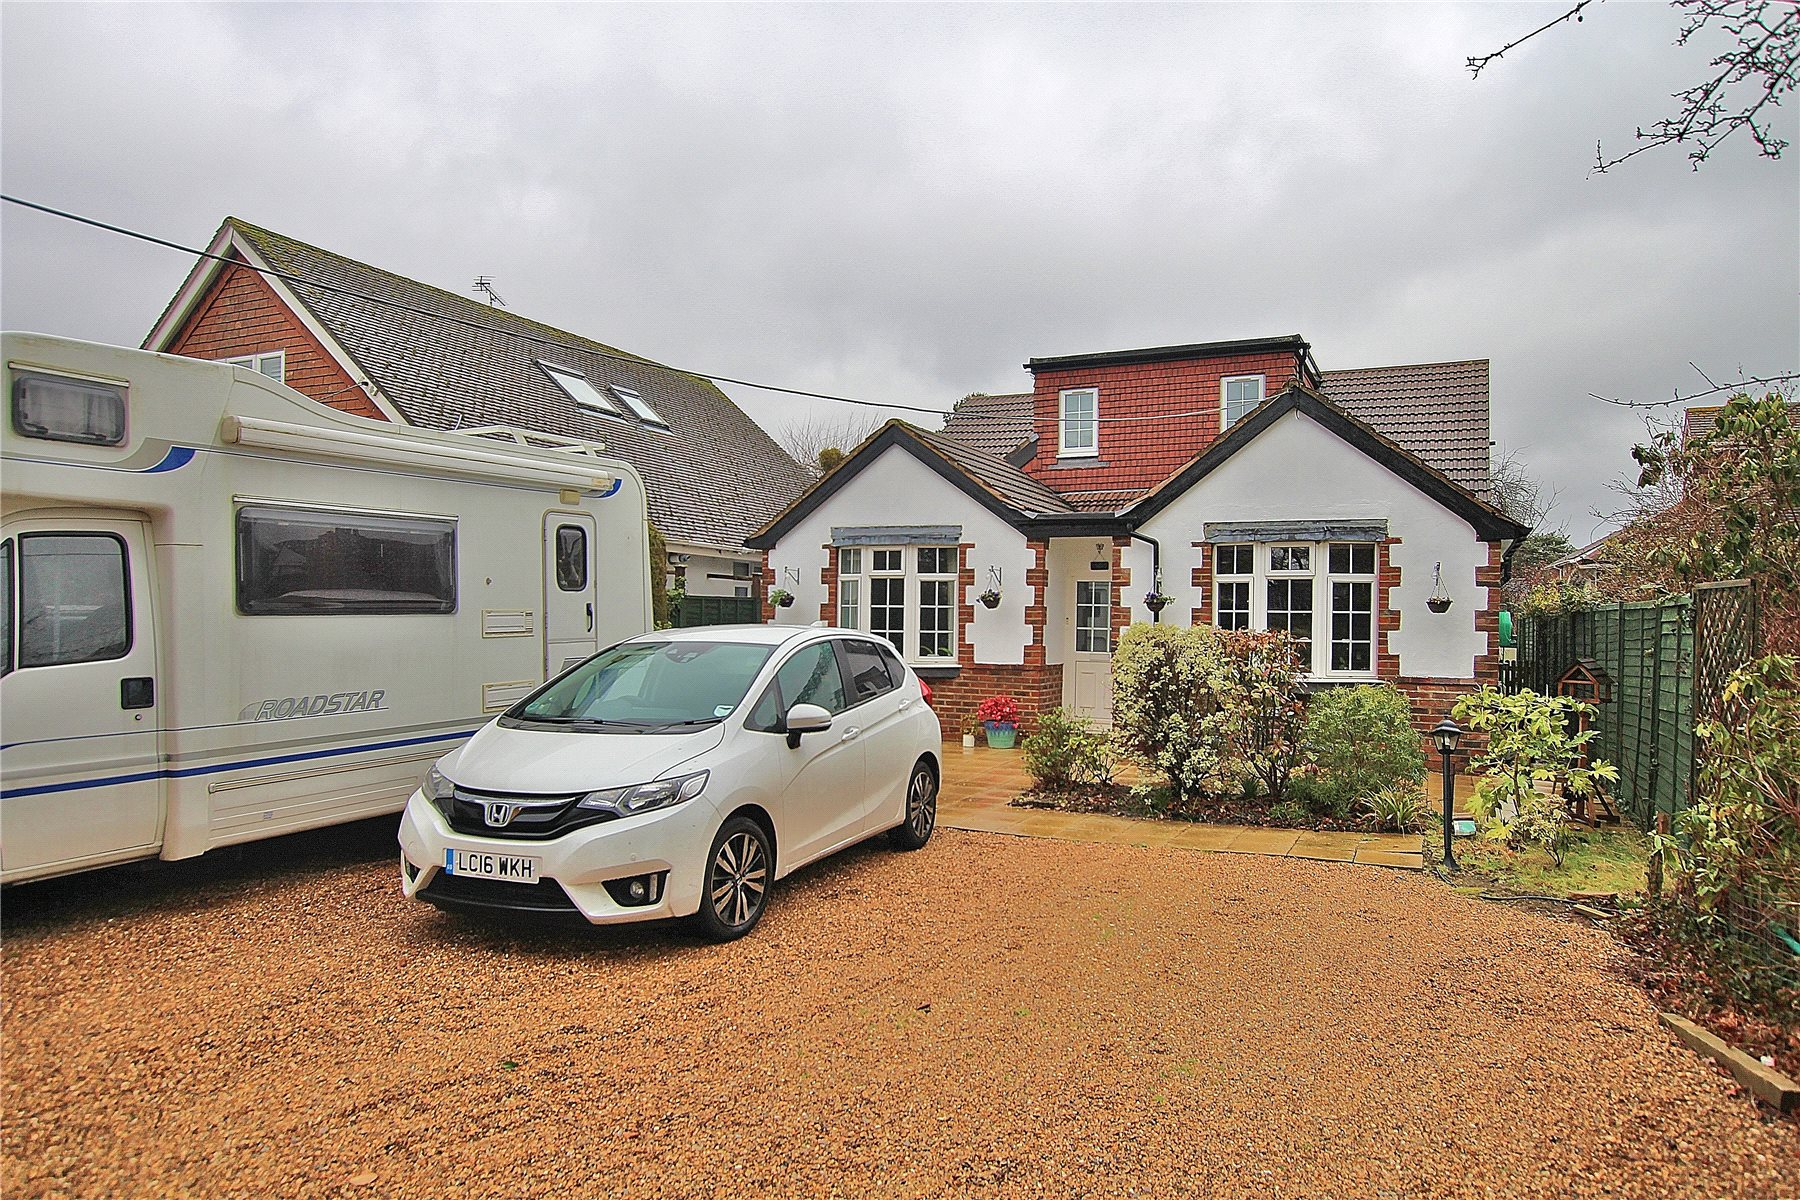 4 Bedrooms Detached Bungalow for sale in Fellow Green, West End, Woking, Surrey, GU24